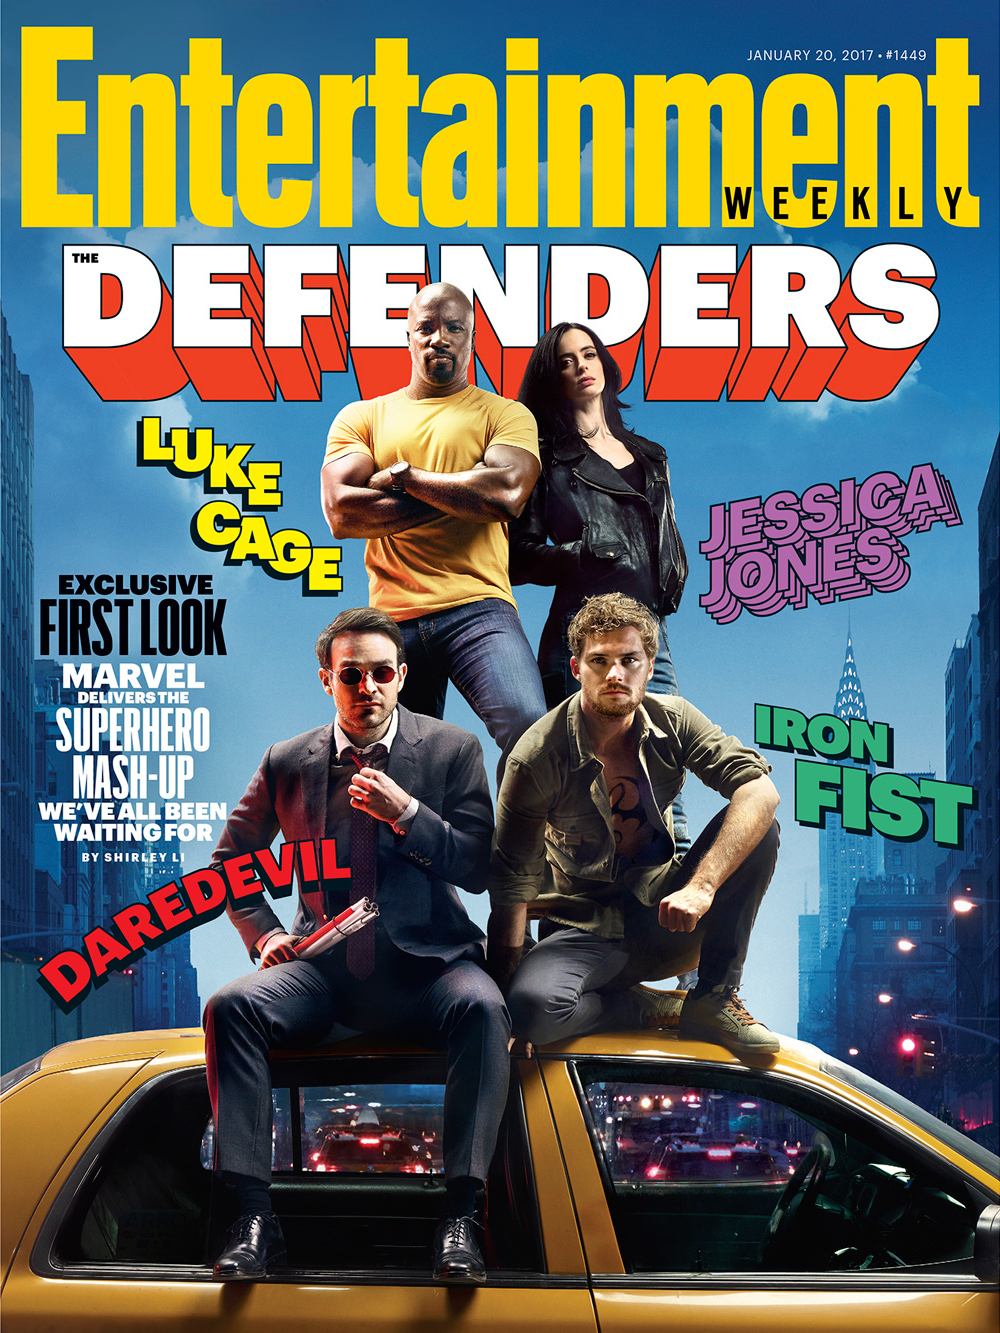 A capa da Entertainment Weekly remete aos quadrinhos do grupo de heróis conhecido como Os Defensores. (Foto: Entertainment Weekly)